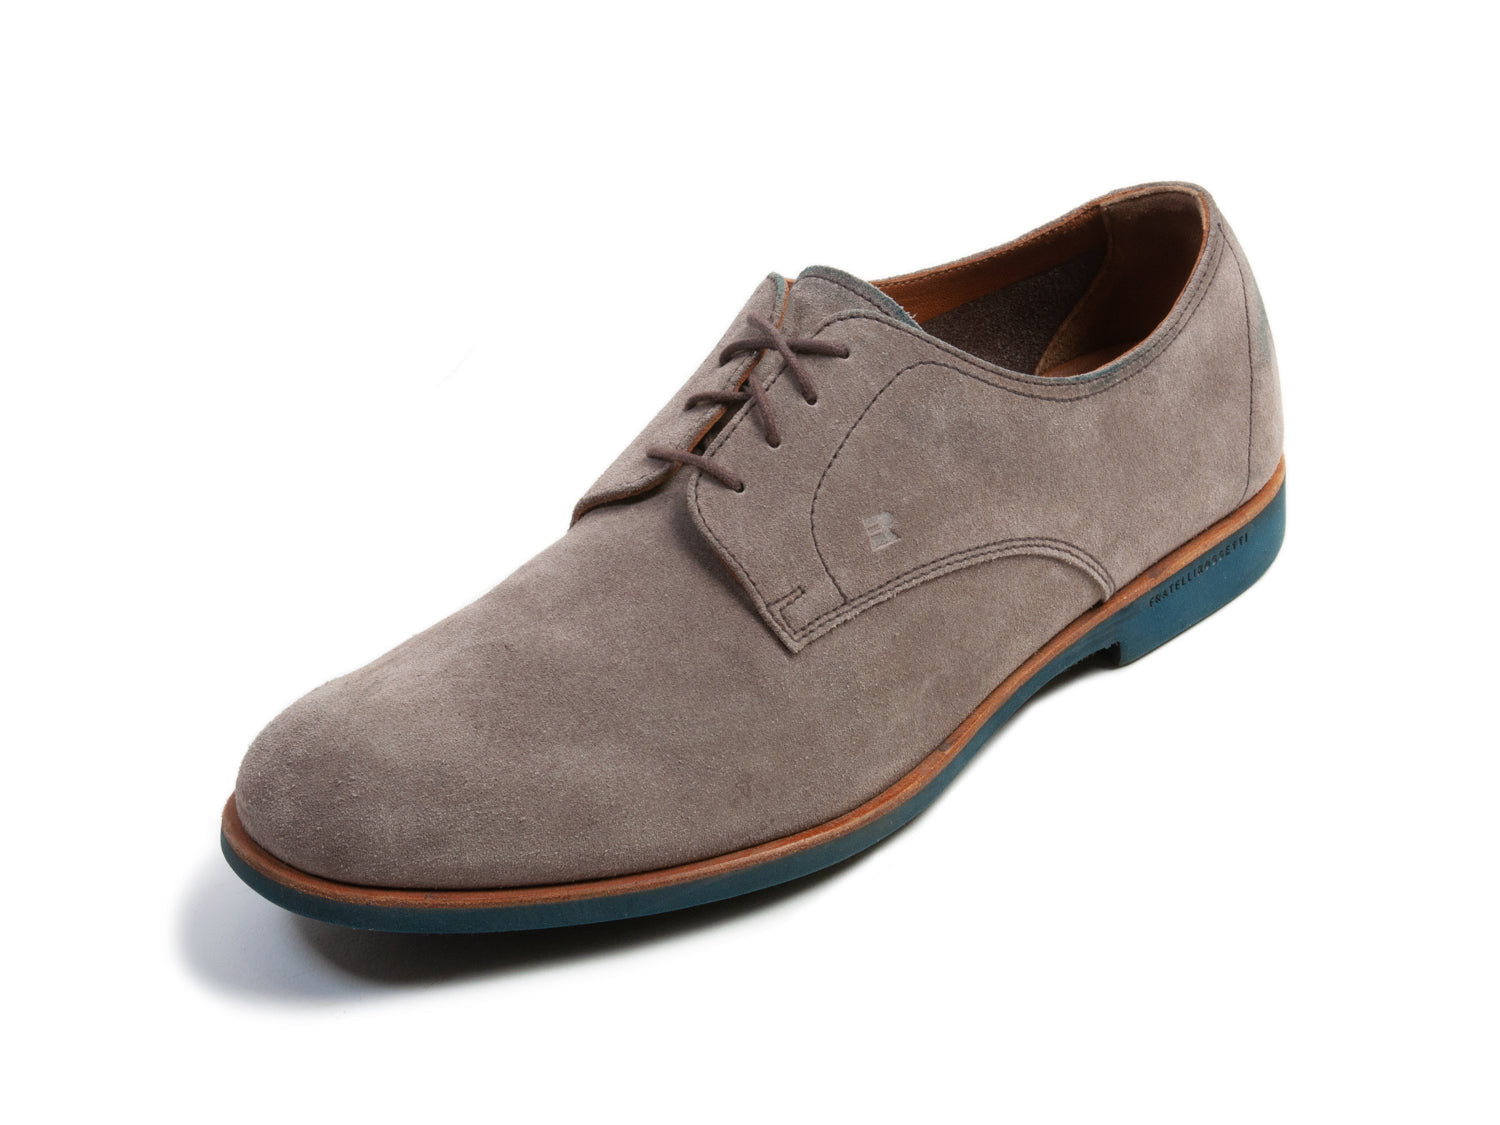 Fratelli Rossetti One Light Brown Suede Shoes for Luxmrkt.com Menswear Consignment Edmonton